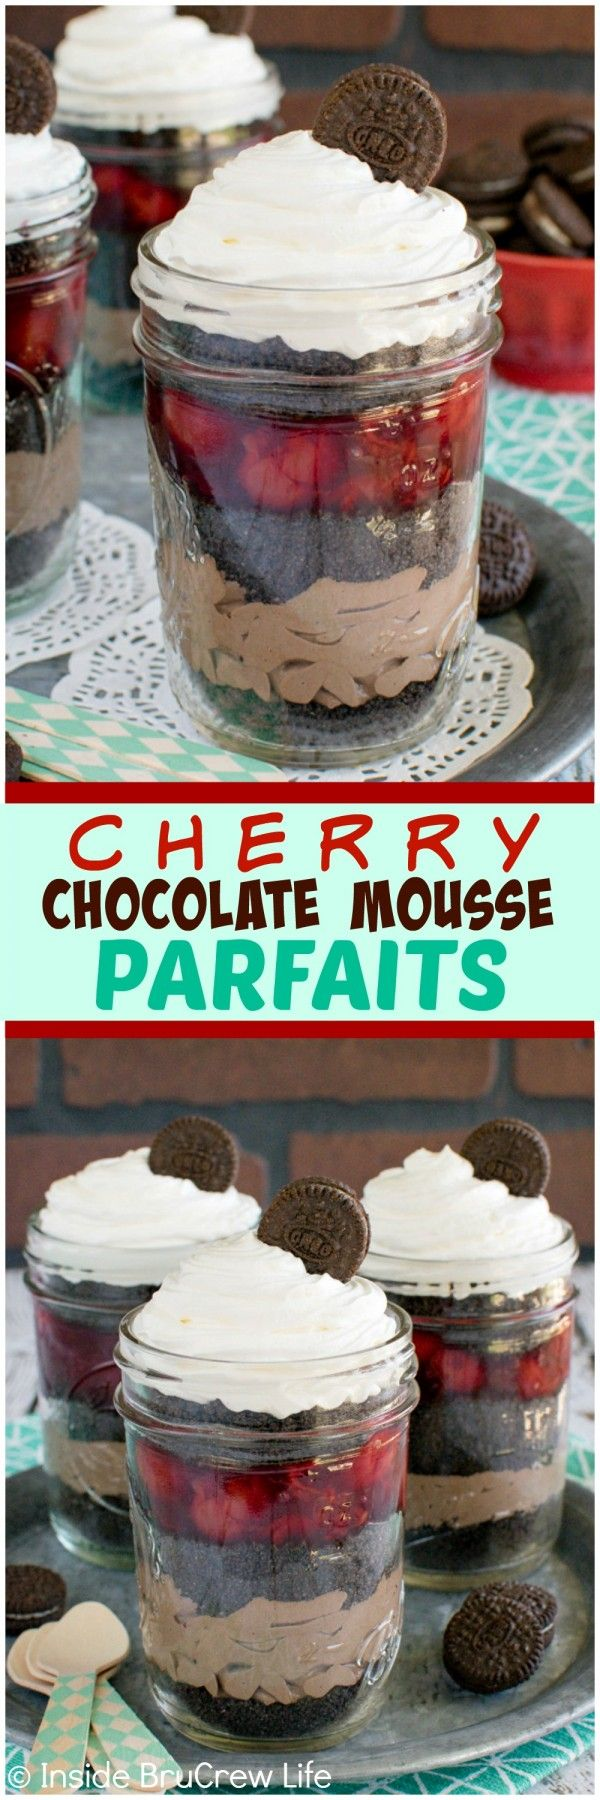 Cherry Chocolate Mousse Parfaits